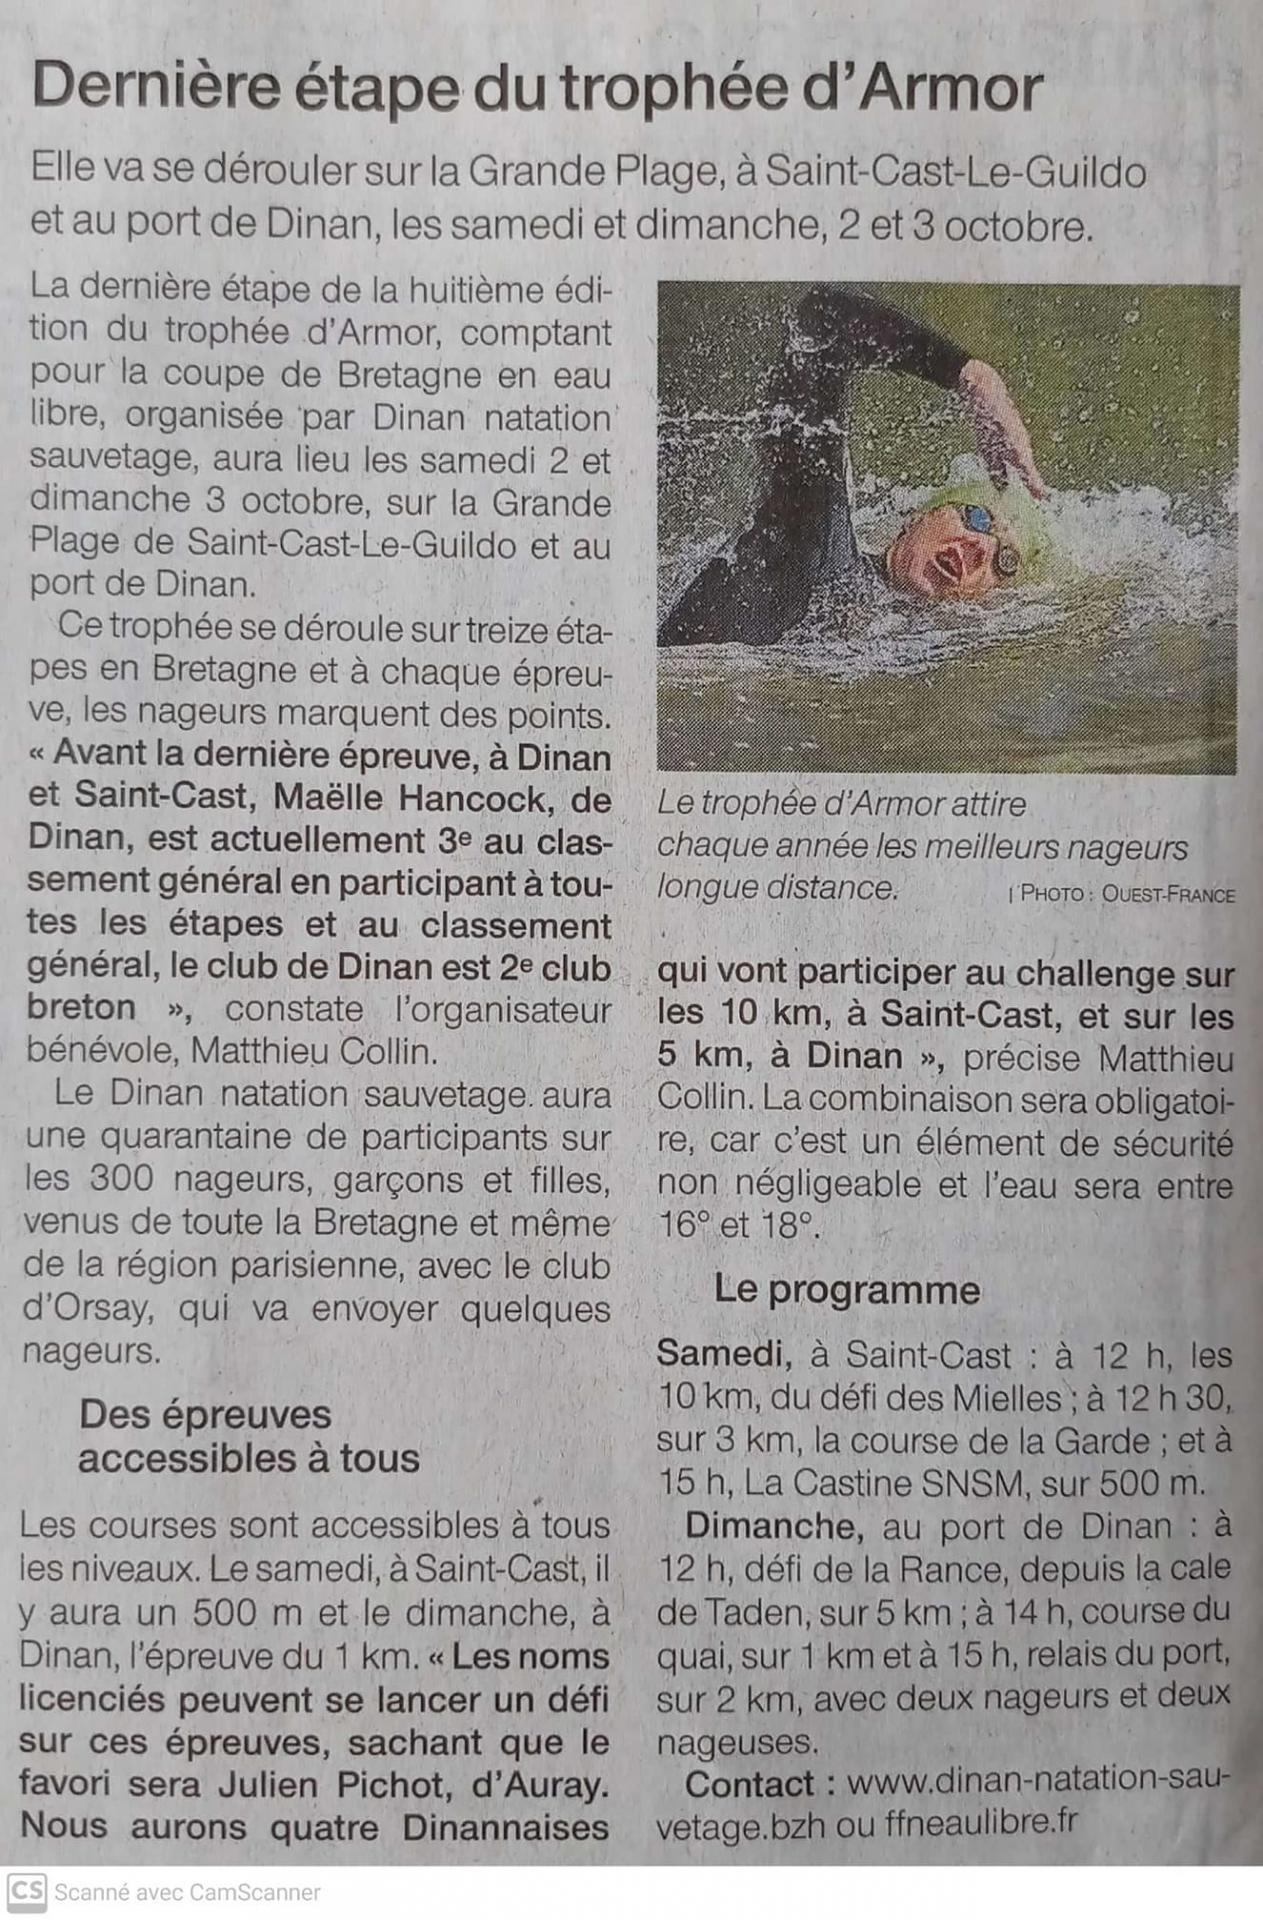 Ouest france 29 9 21